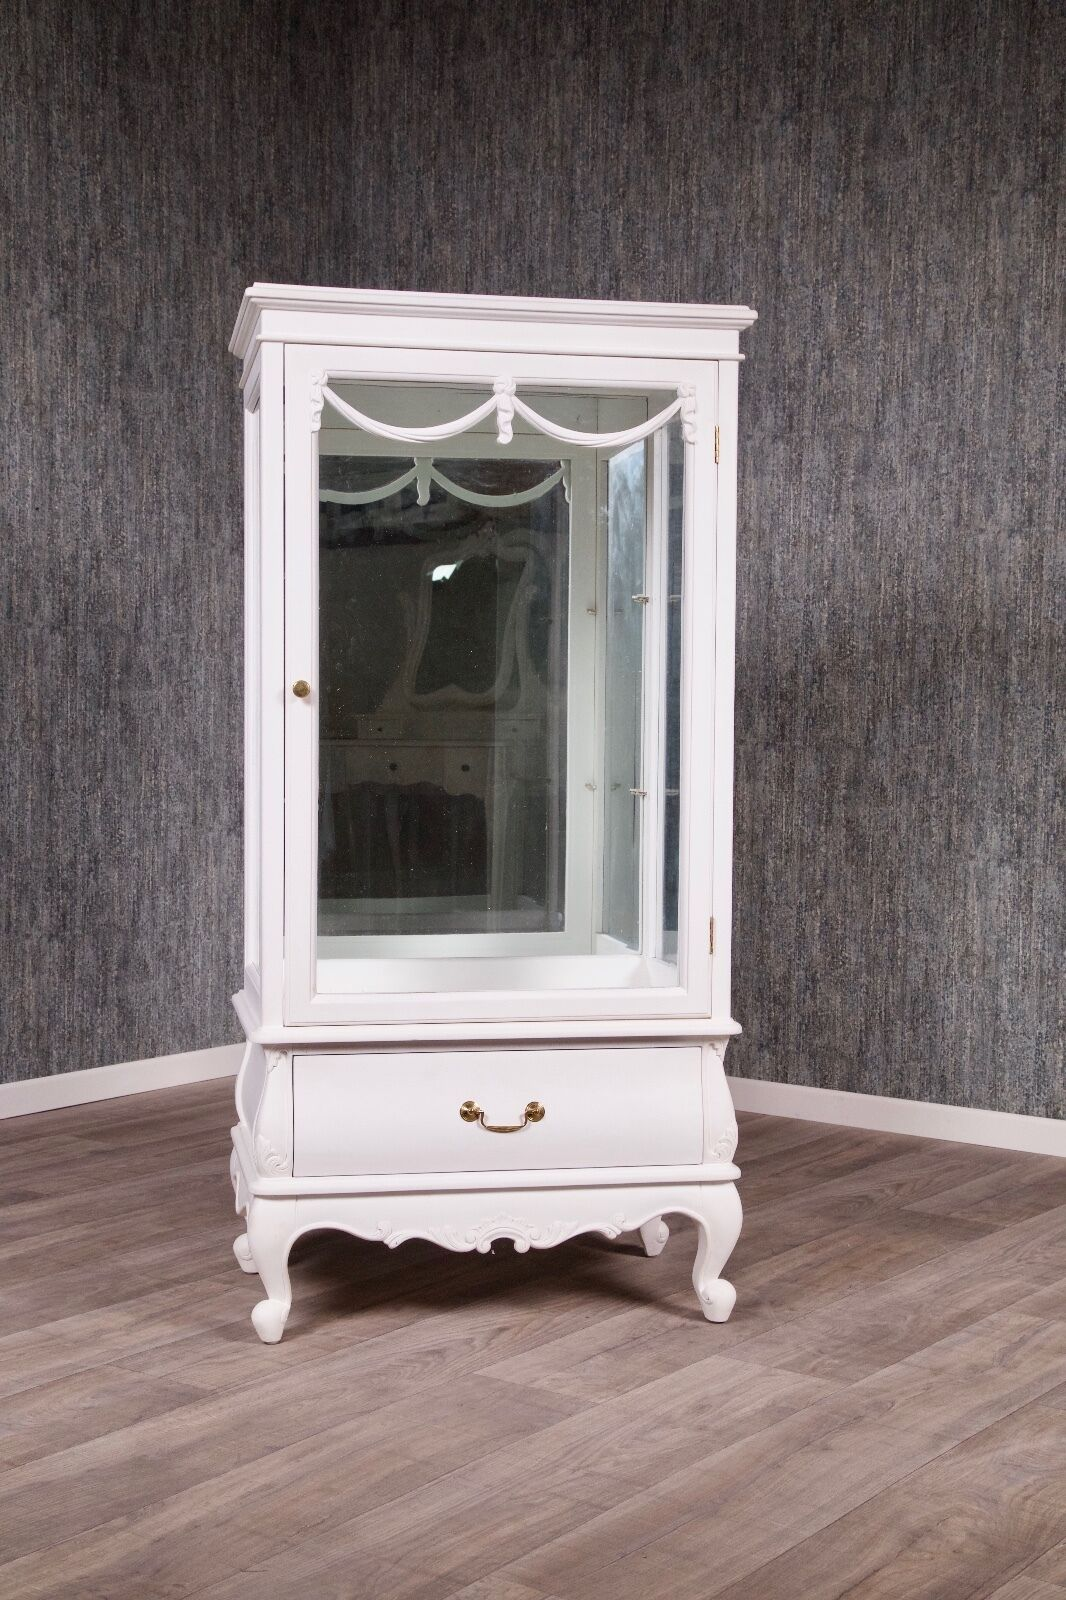 barock vitrine mahagoni massivholz louis xv wei schrank kommode eur picclick de. Black Bedroom Furniture Sets. Home Design Ideas